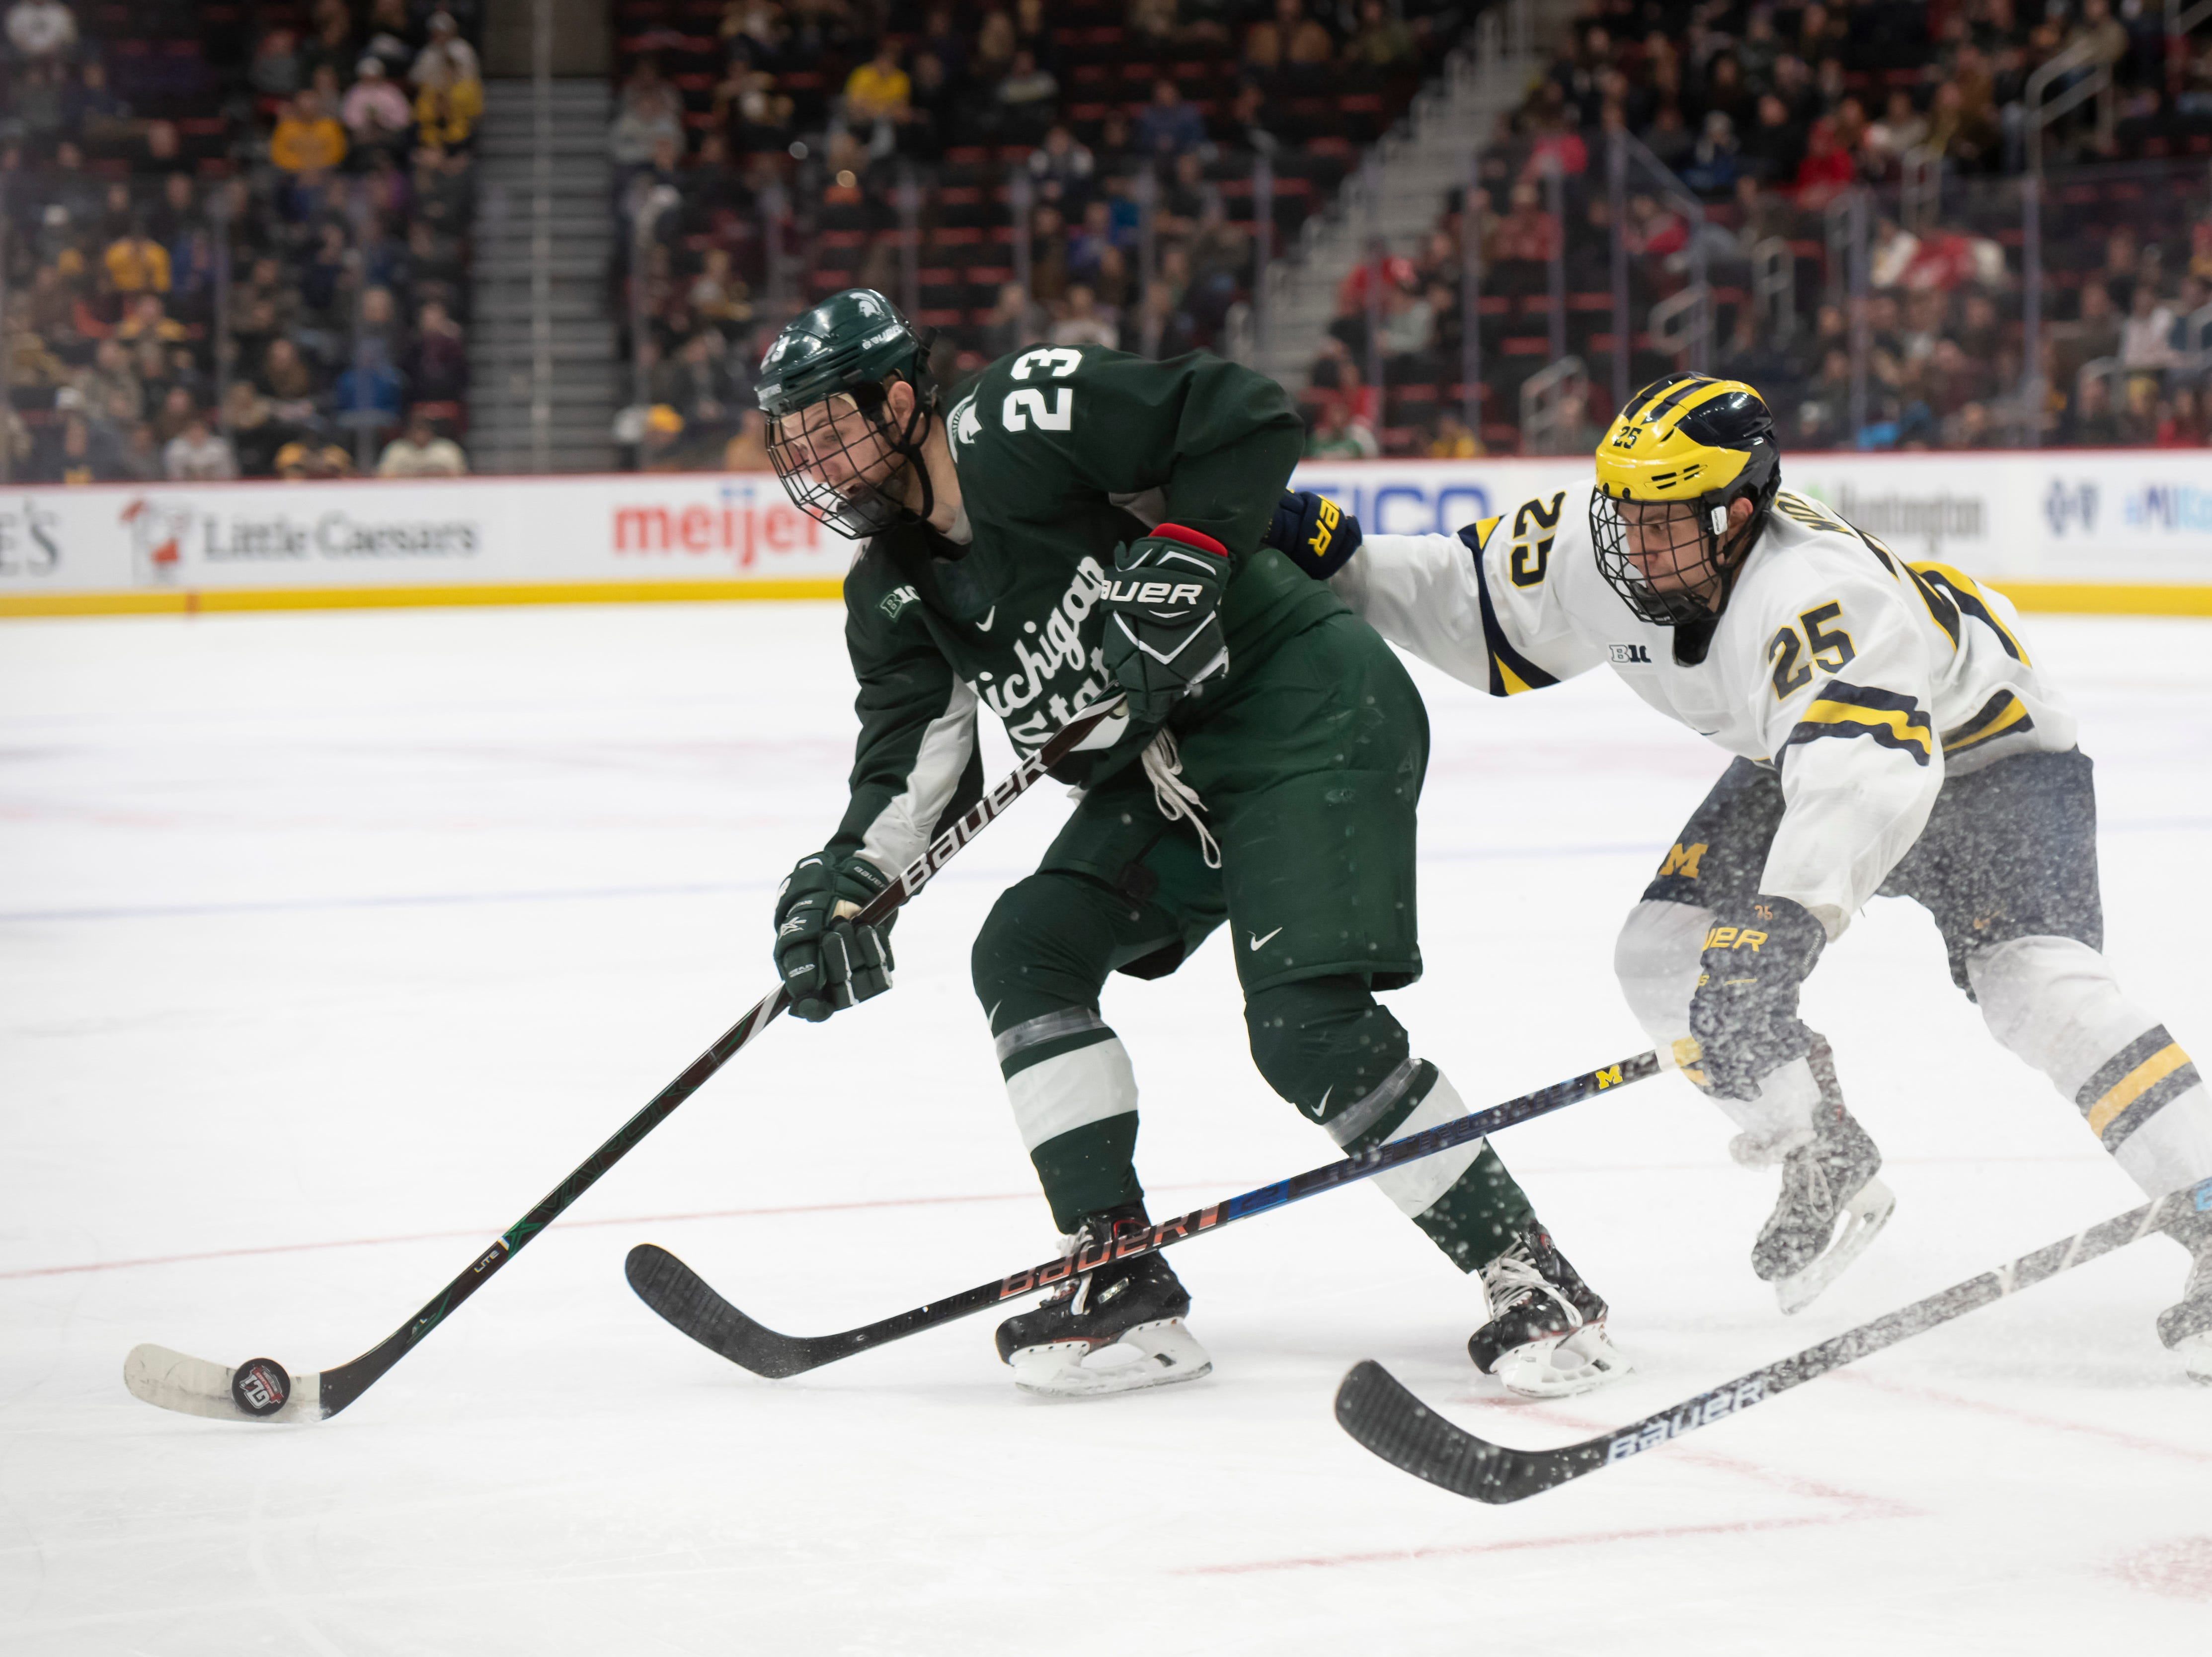 Michigan State forward Cody Milan keeps the puck away from Michigan forward Luke Morgan in the second period.